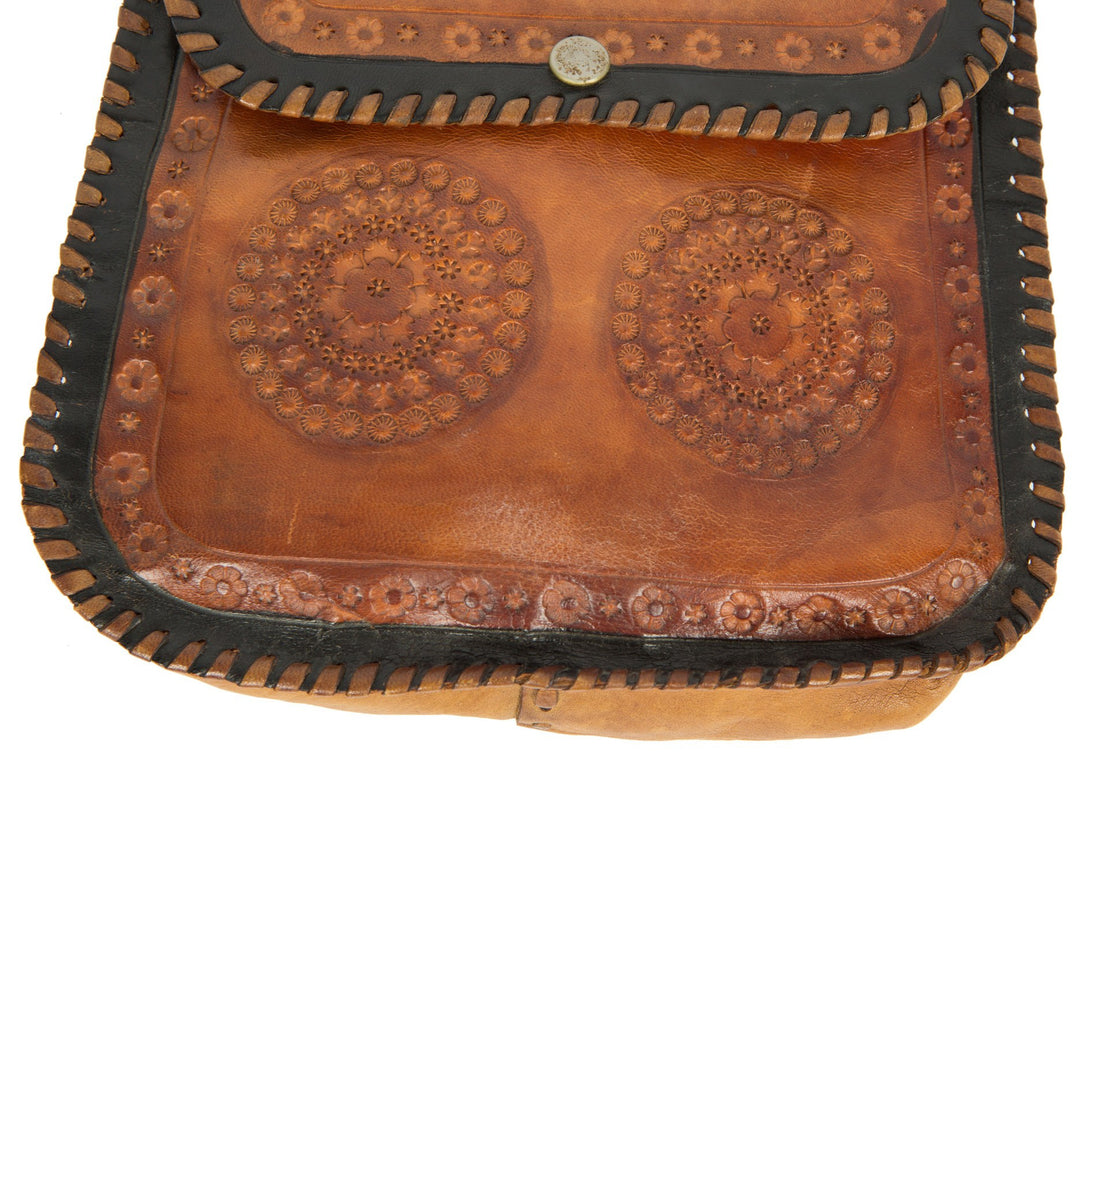 Vintage Tooled Shoulder Bag - Vintage: Women's - Iron and Resin